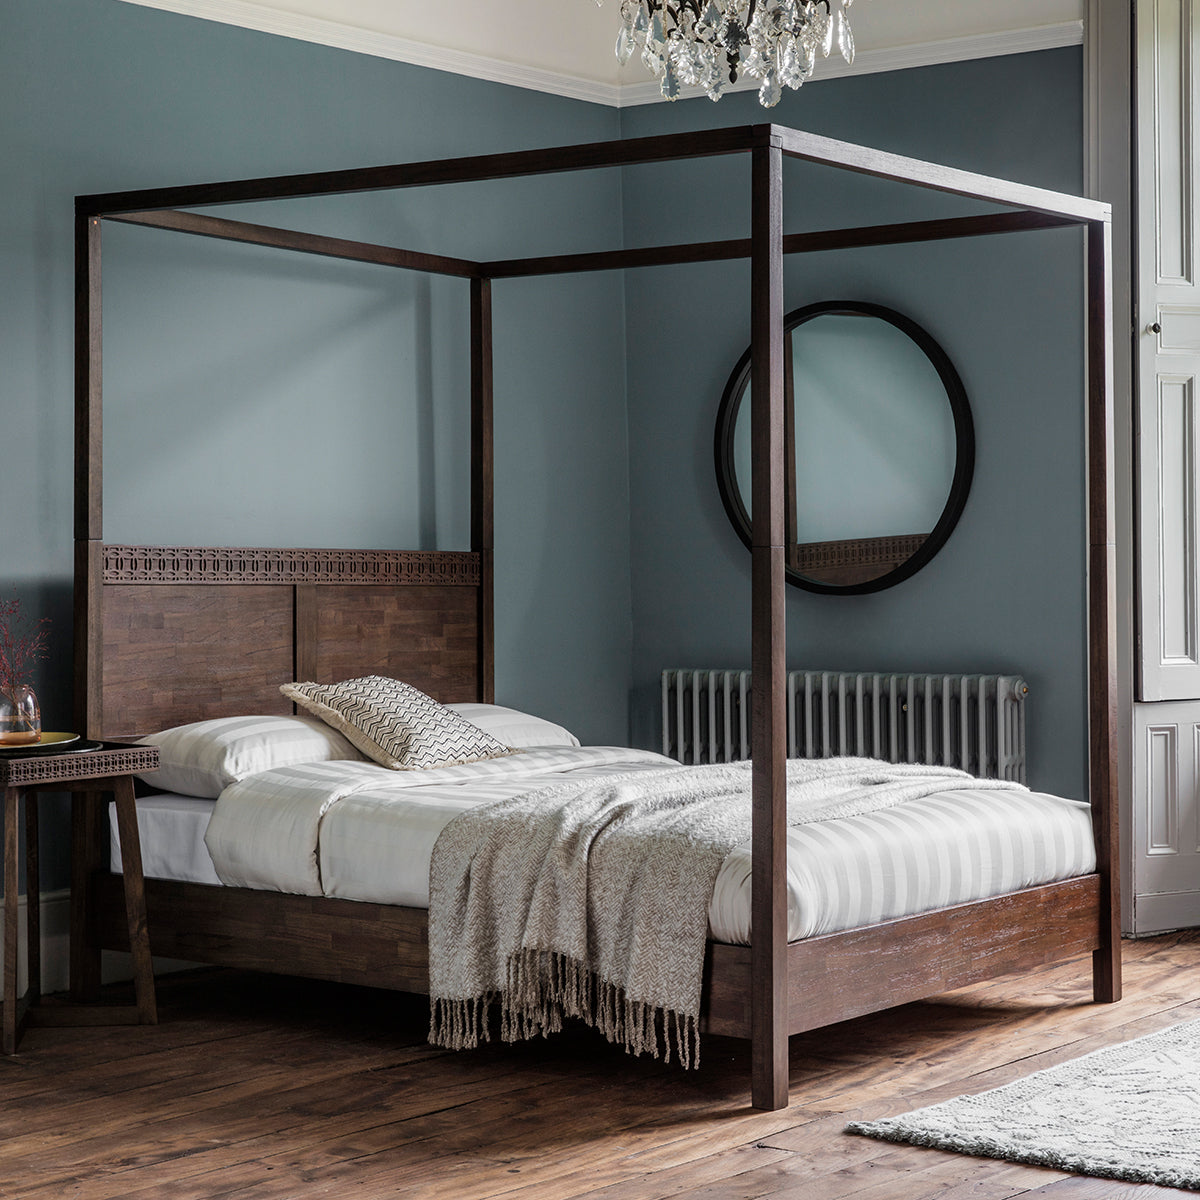 Picture of: Greenwich 4 Poster Super King Size Bed In Natural Fast Free Delivery Ezzo Co Uk